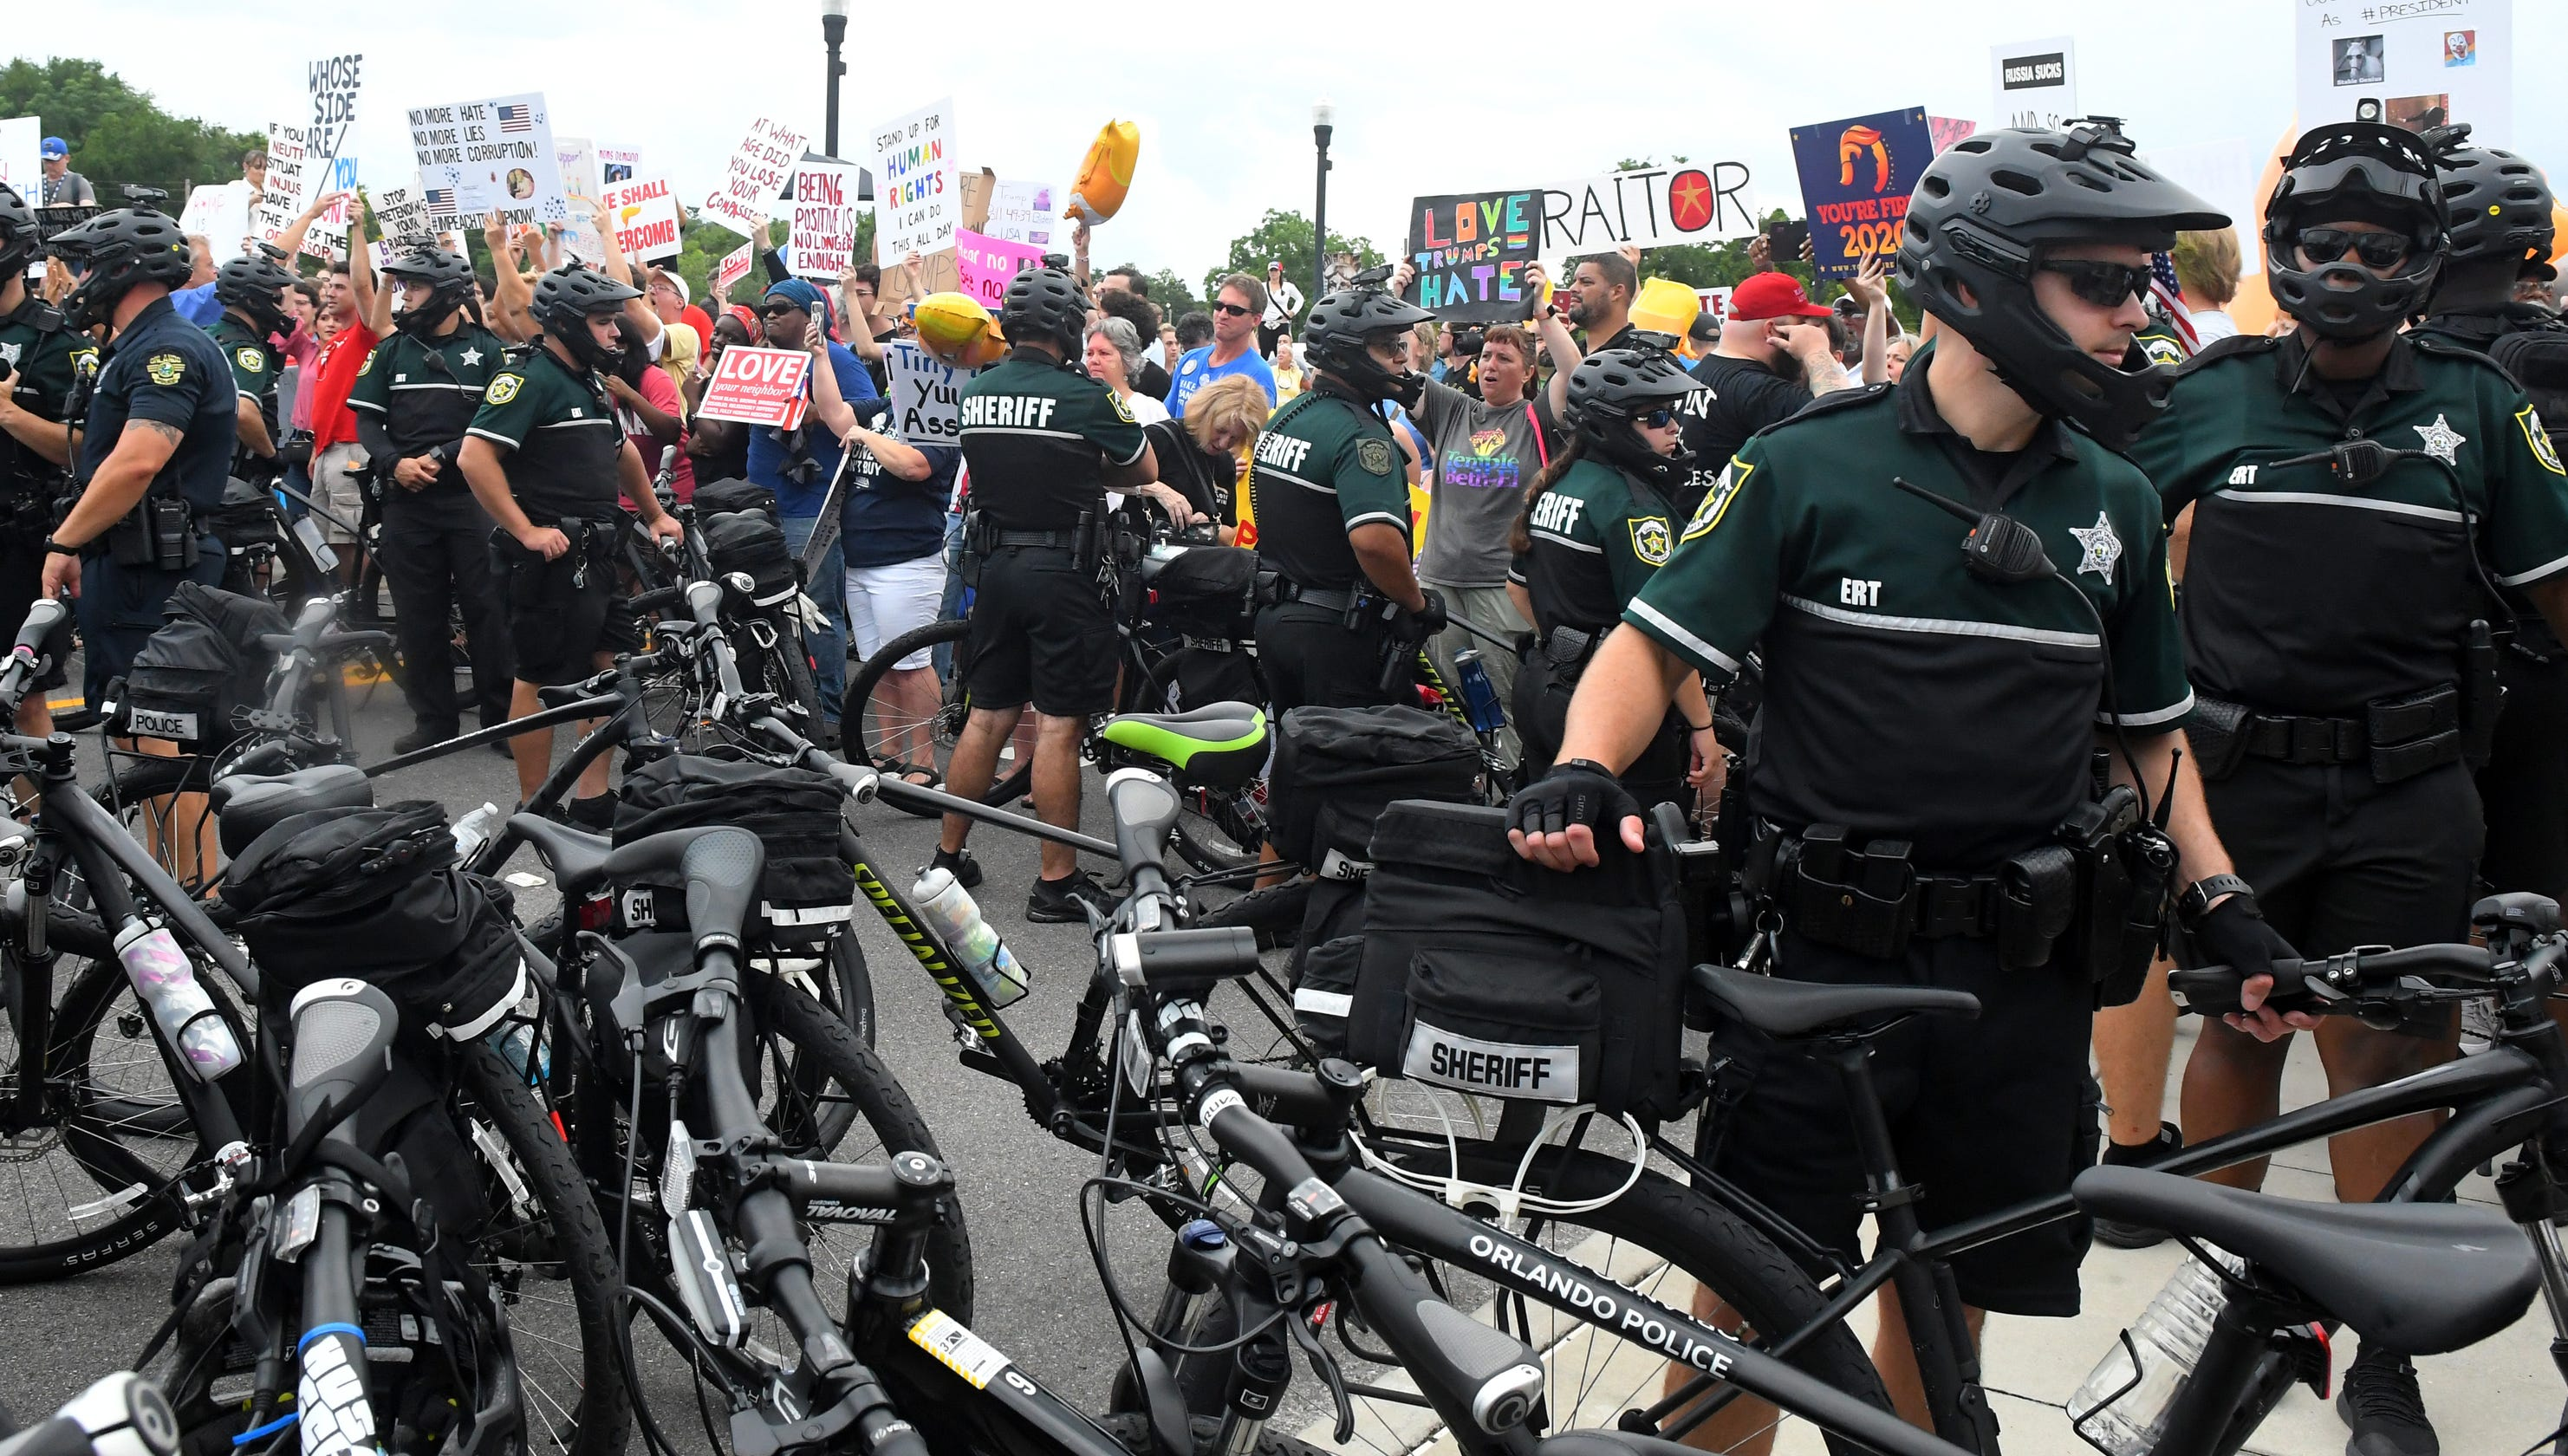 Best Cycling Camera 2020 Could the 2020 election turn violent? Let's unpack the scenarios